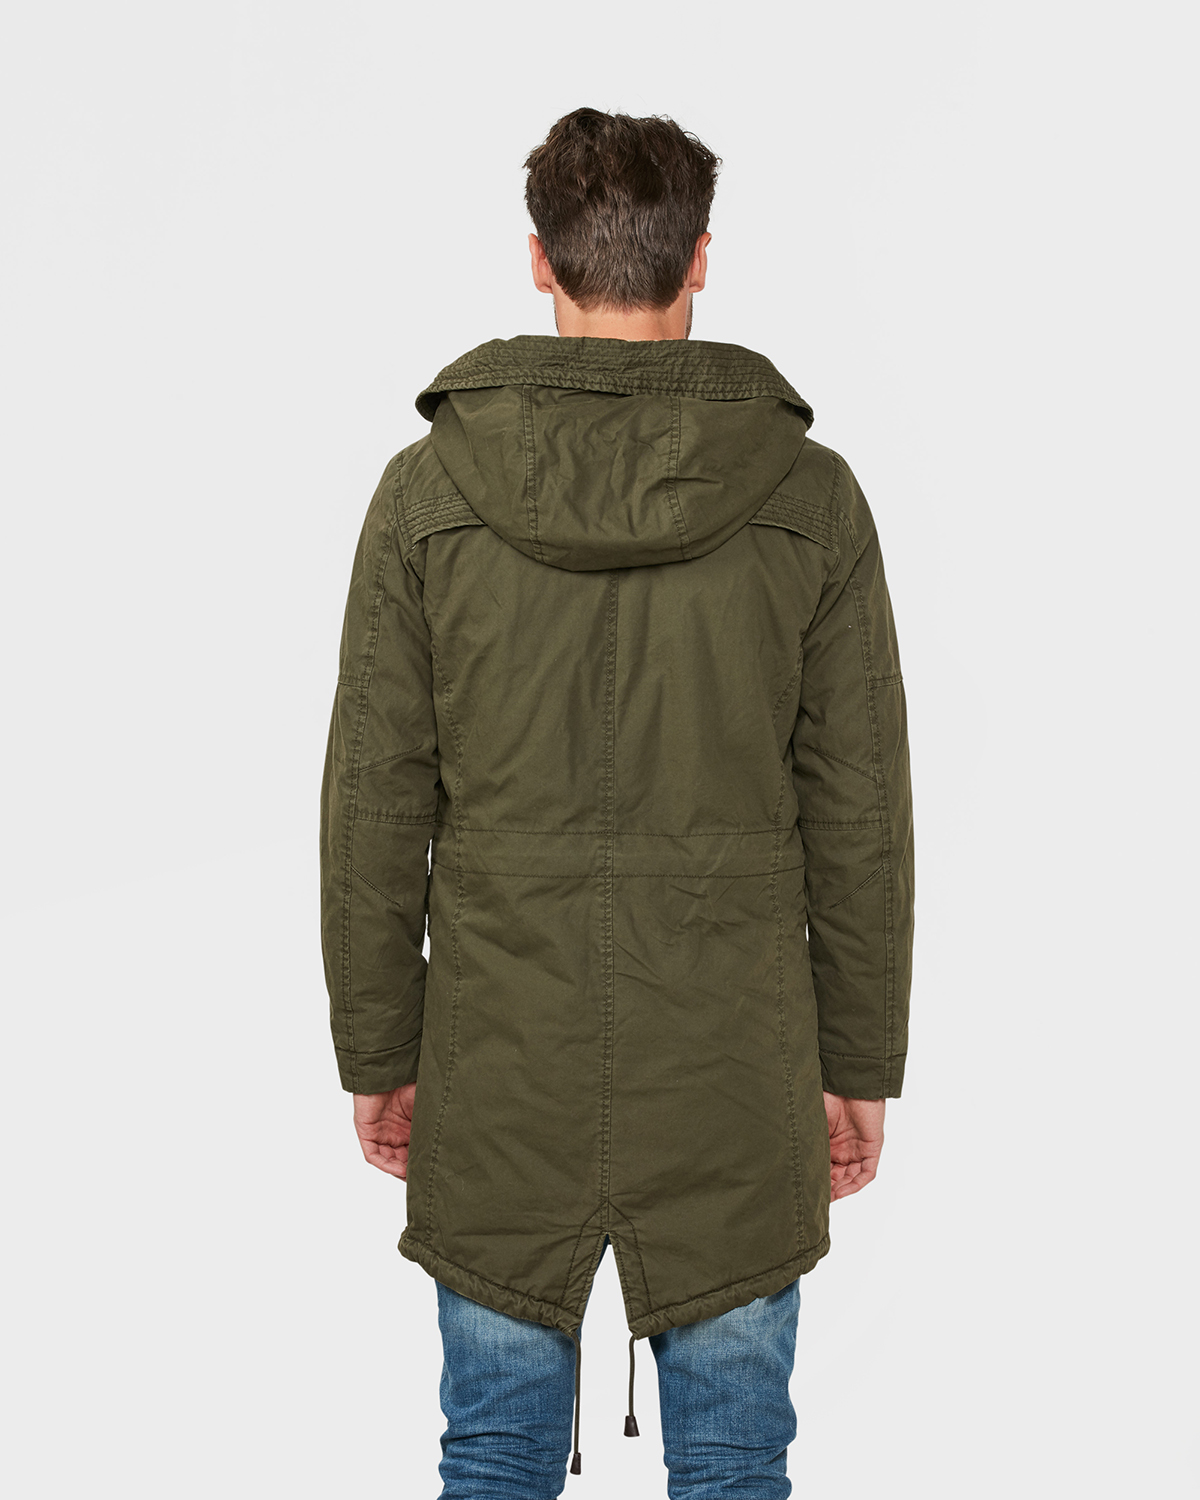 Legergroene Winterjas Heren.Heren Army Green Parka 79361842 We Fashion